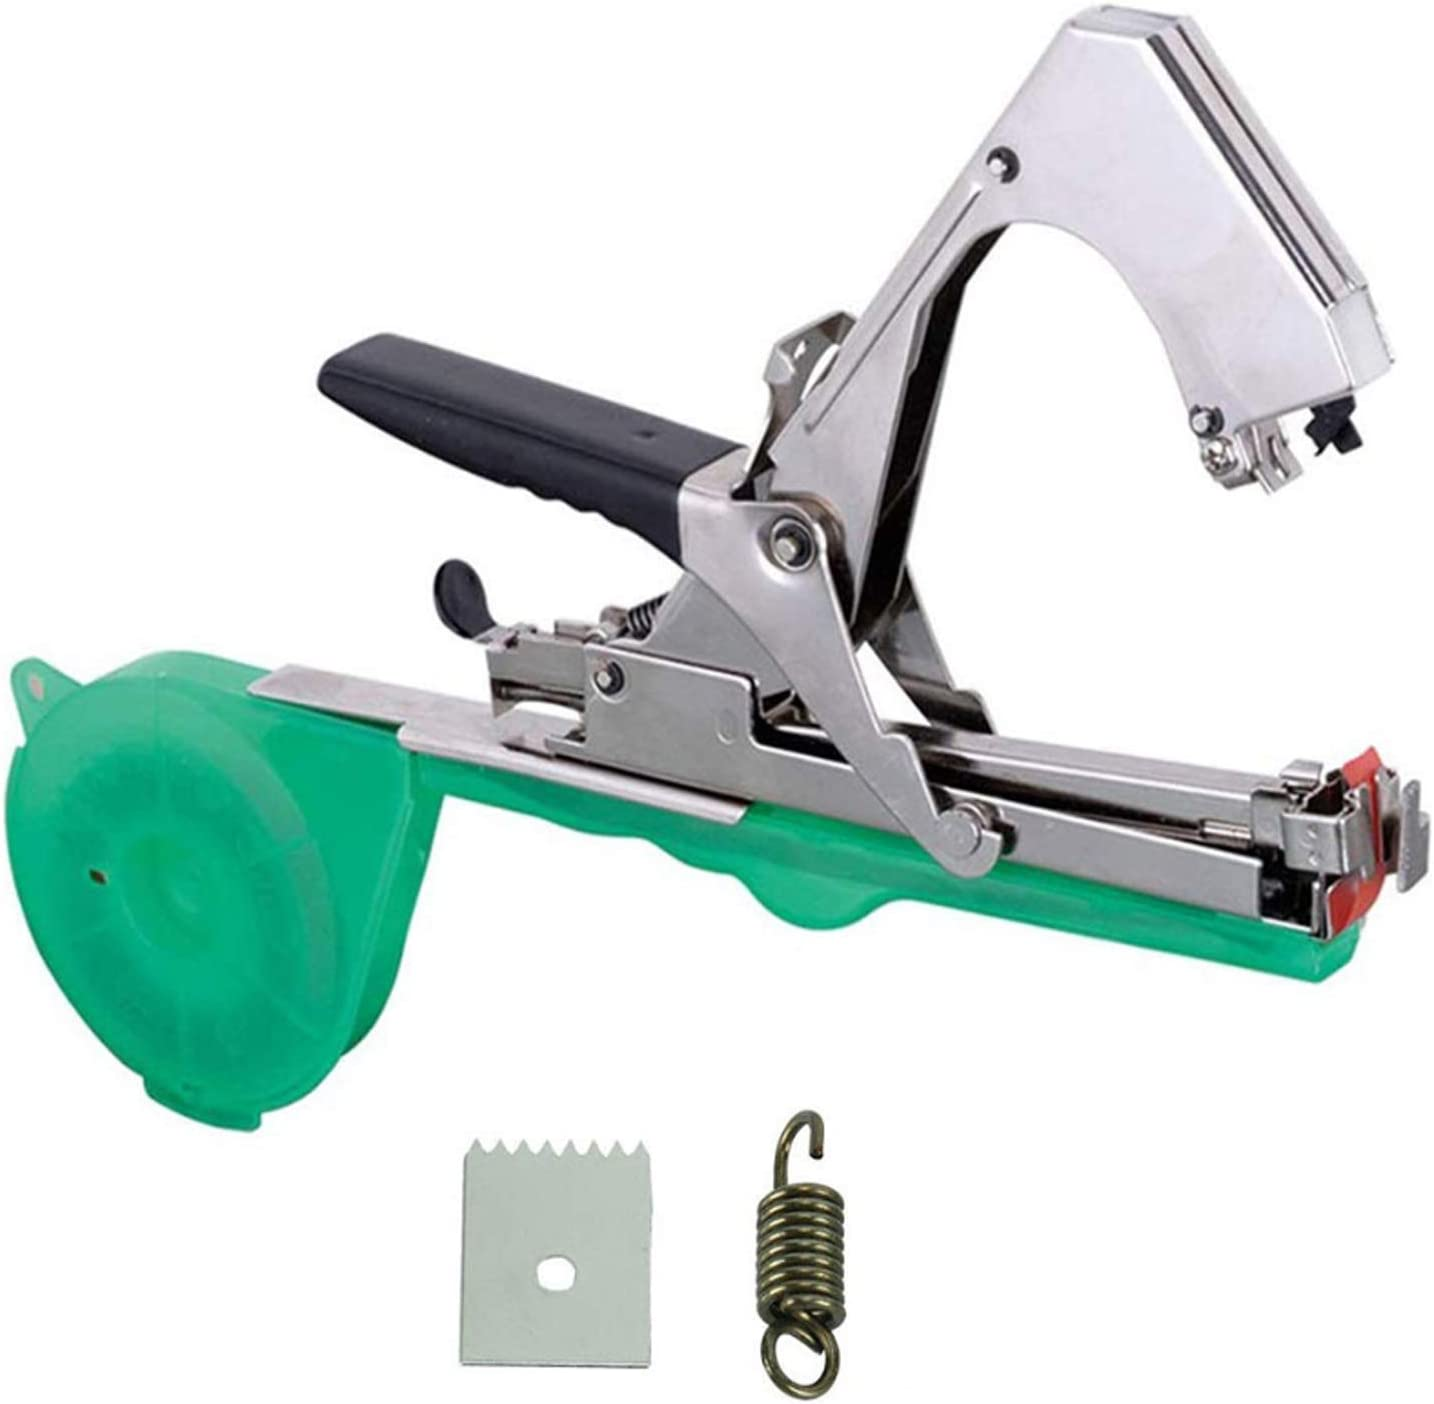 Tying Machine, Plant Tying Tool Garden Vine Tying Tape Tool Agriculture Tapener Hand Binding Machine for Tomato Fruits Vegetables,Vine Branch Tying Hand Tape Tool,Mode1